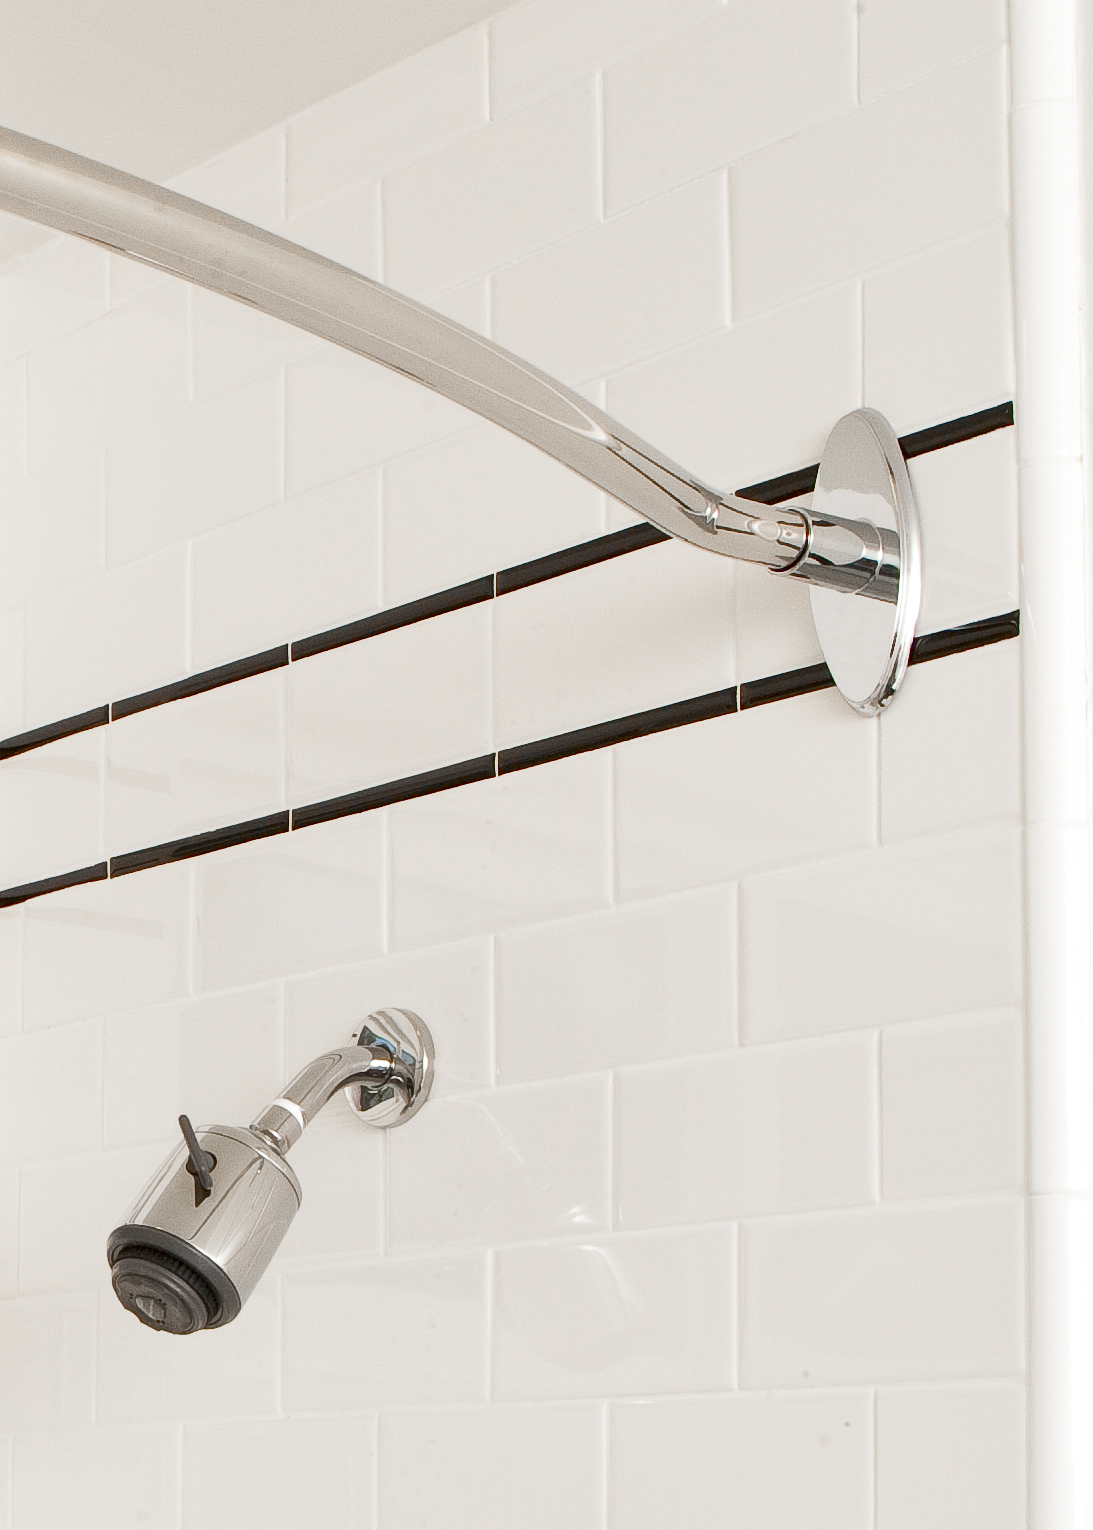 Motiv® Curved Shower Rod Creates 6 More Inches of Shower Space